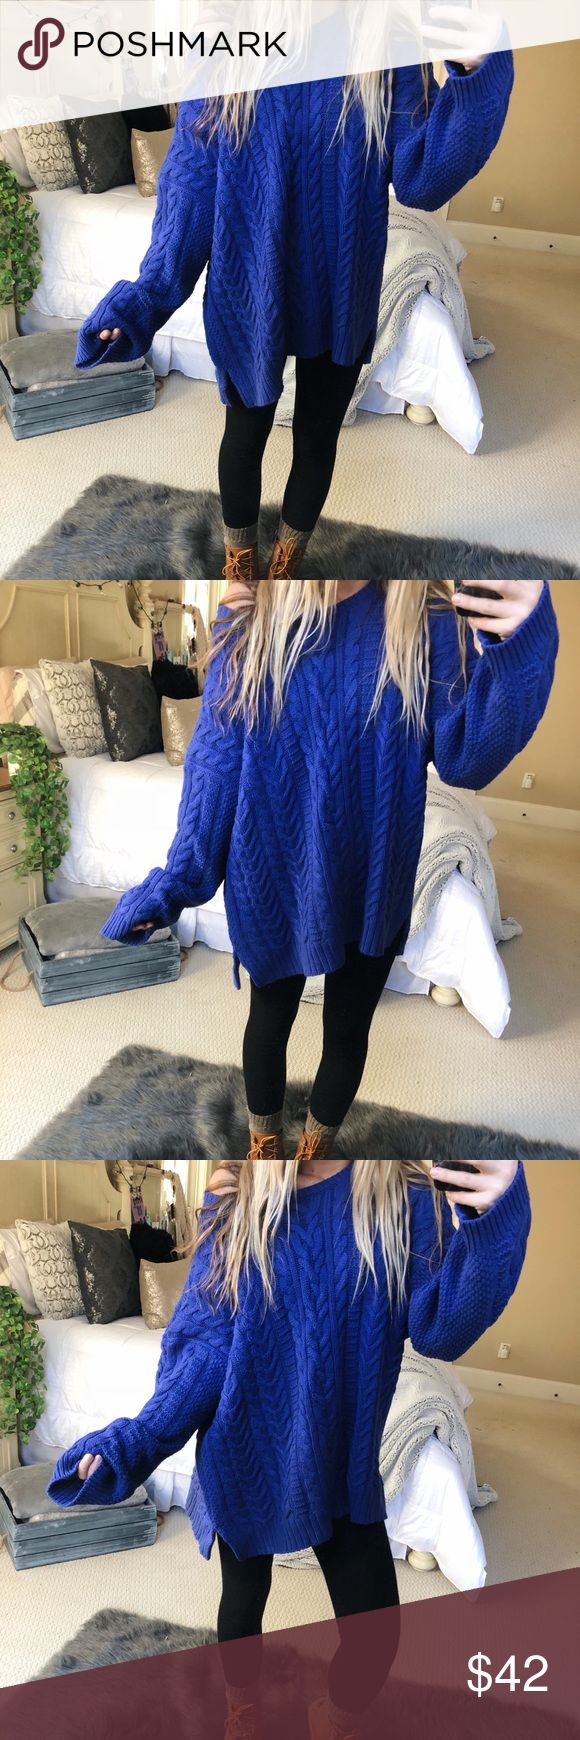 cobalt blue slouchy knit super gorgeous and cozy chunky cobalt blue slouchy knit sweater. fits a size medium or large 🦋🌲🌲☕️ — * all offers 100% welcomed + encouraged * bundle for a private discount of at least 20% off  * orders guaranteed to ship within 1-2 days unless stated otherwise * ask me any questions if you ever have any! xo Sweaters